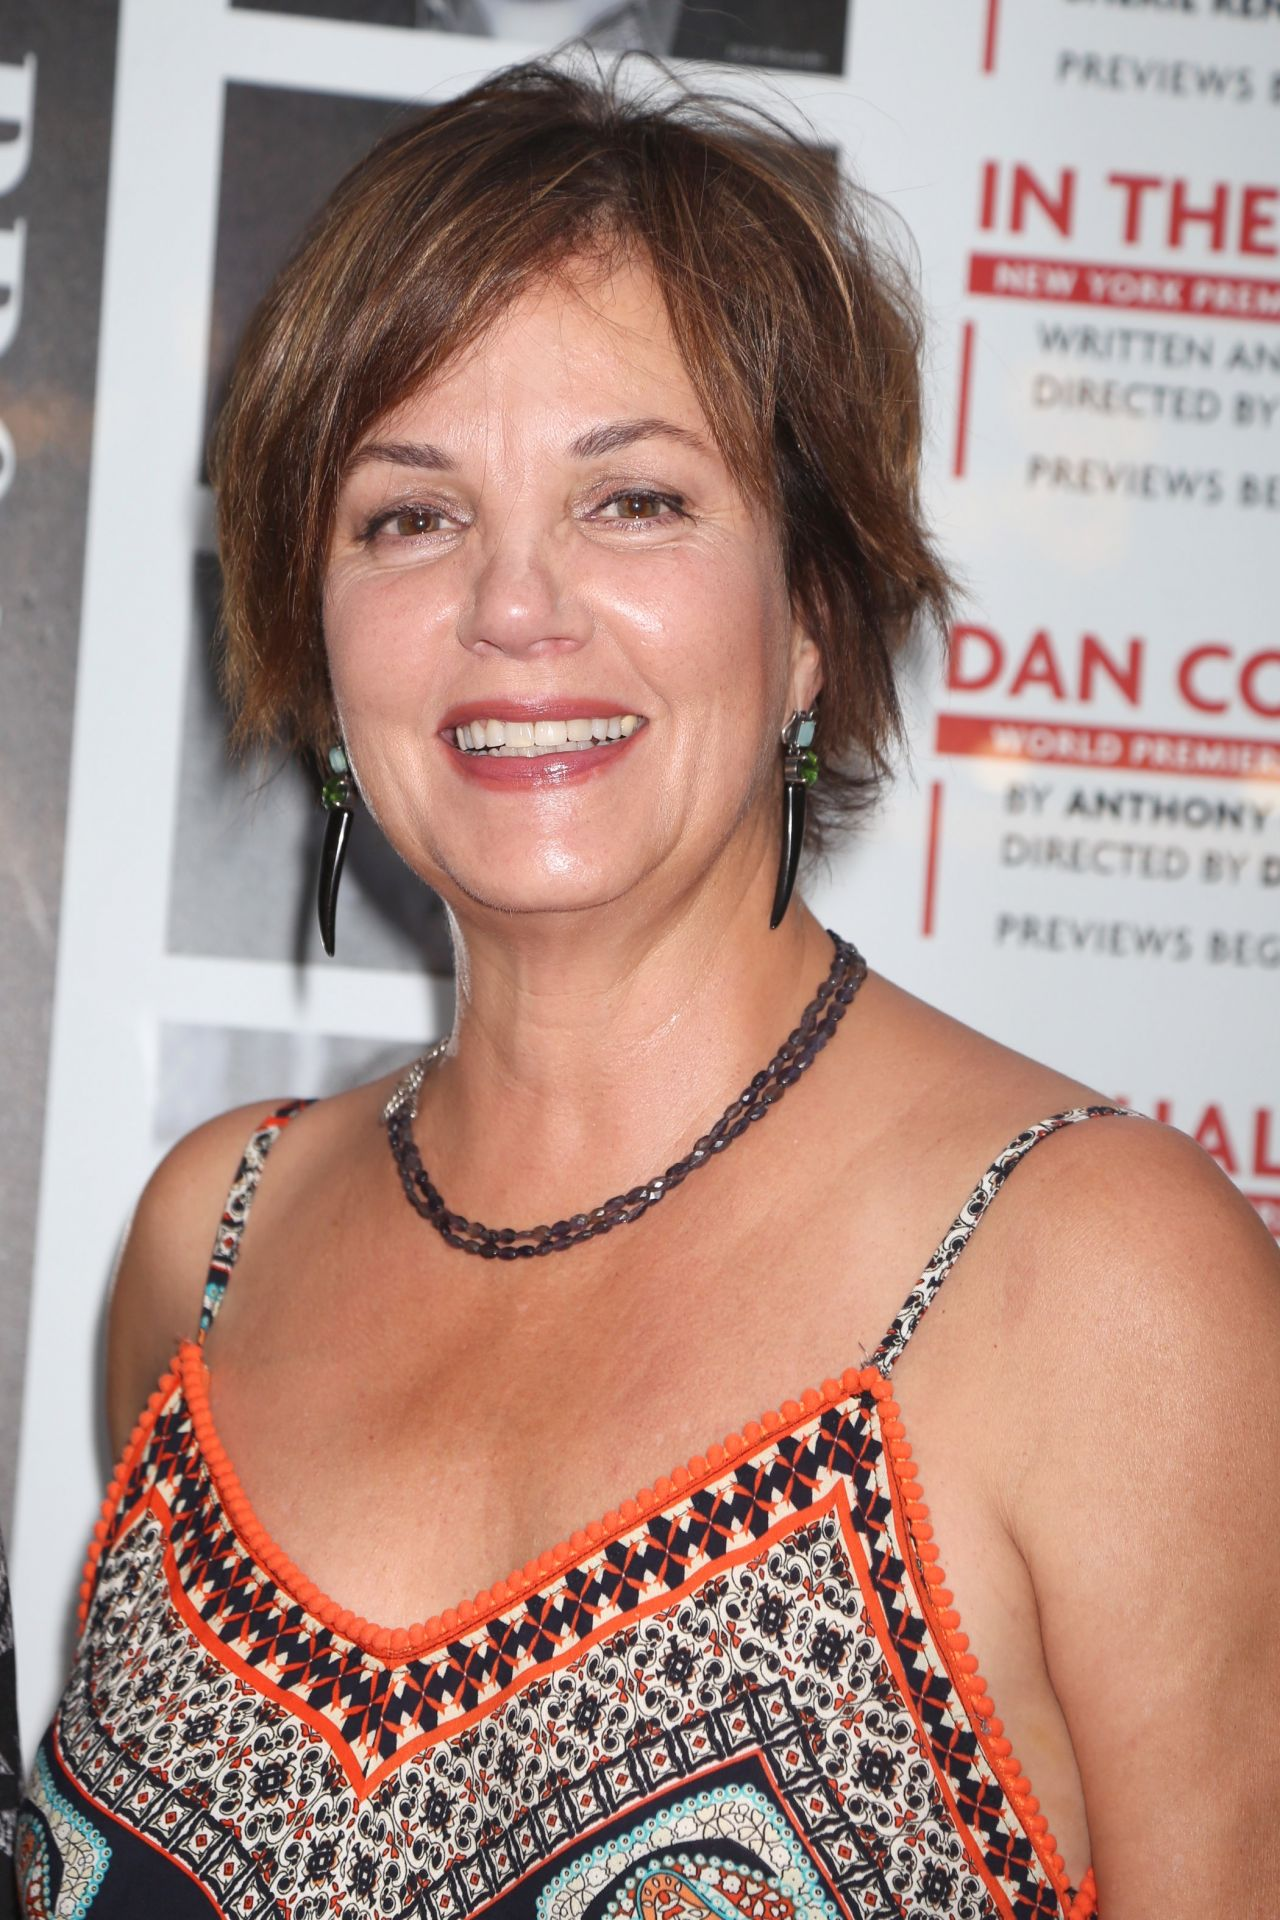 Margaret colin prince of broadway premiere in new york naked (97 photos), Leaked Celebrity picture